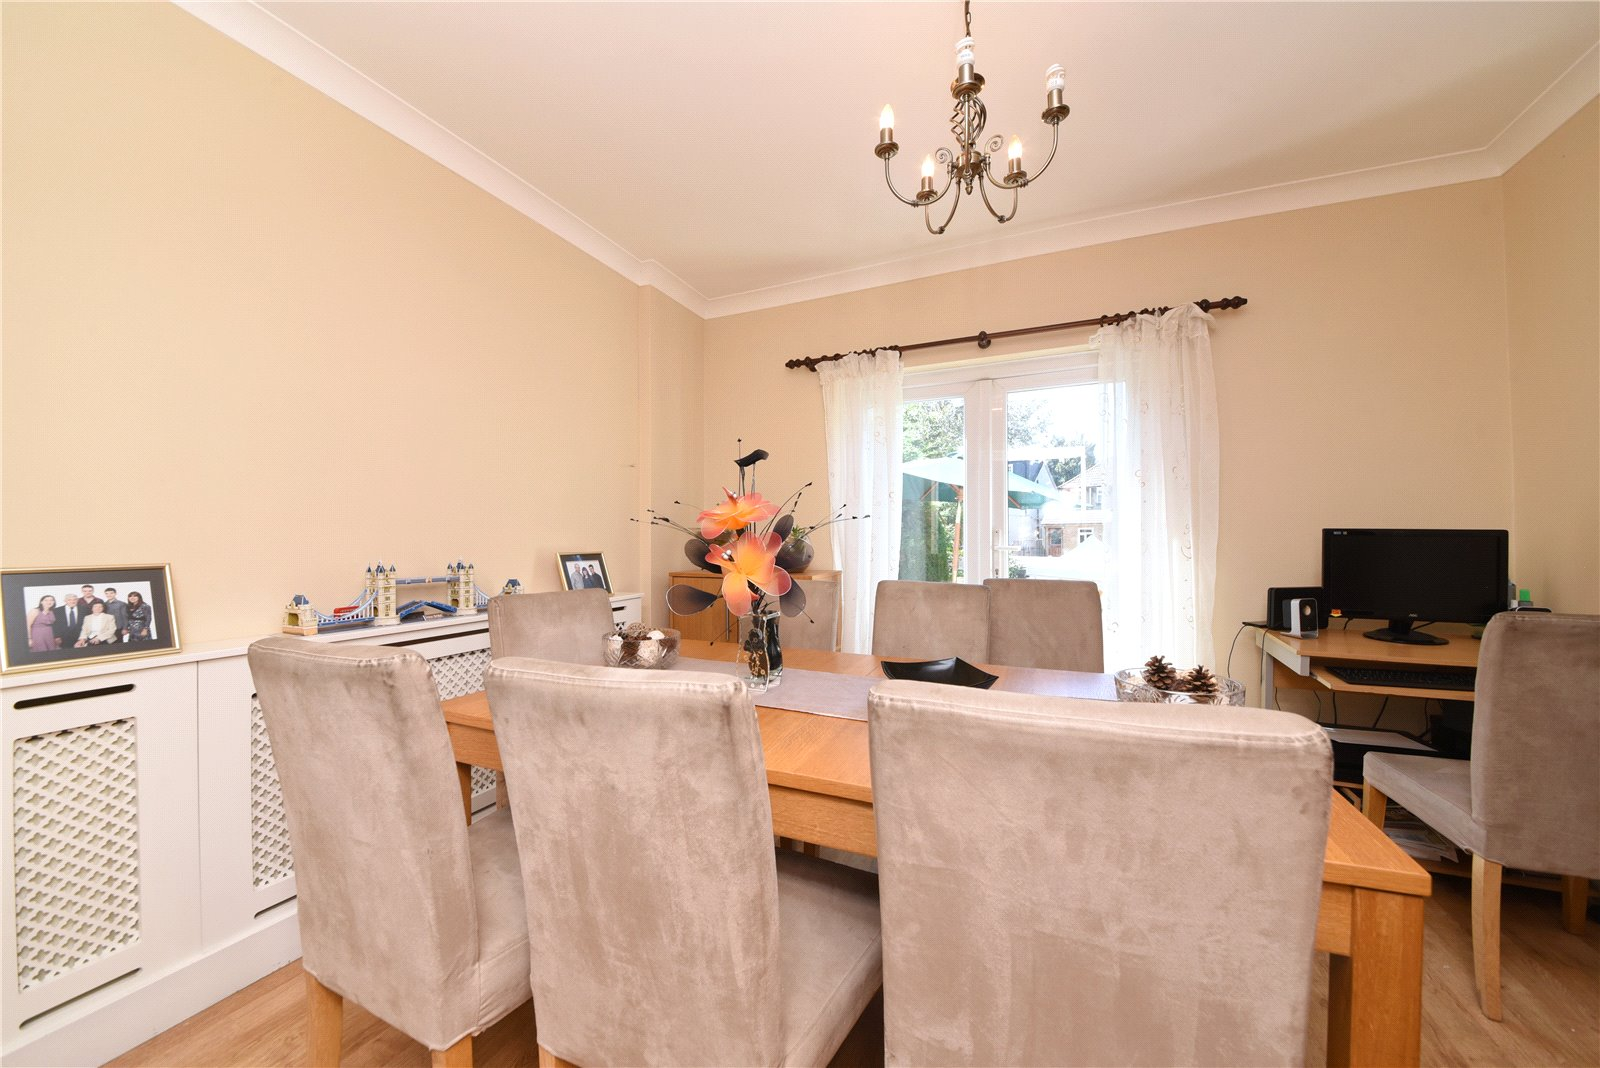 3 bed house for sale in Southgate, N14 4NY 5